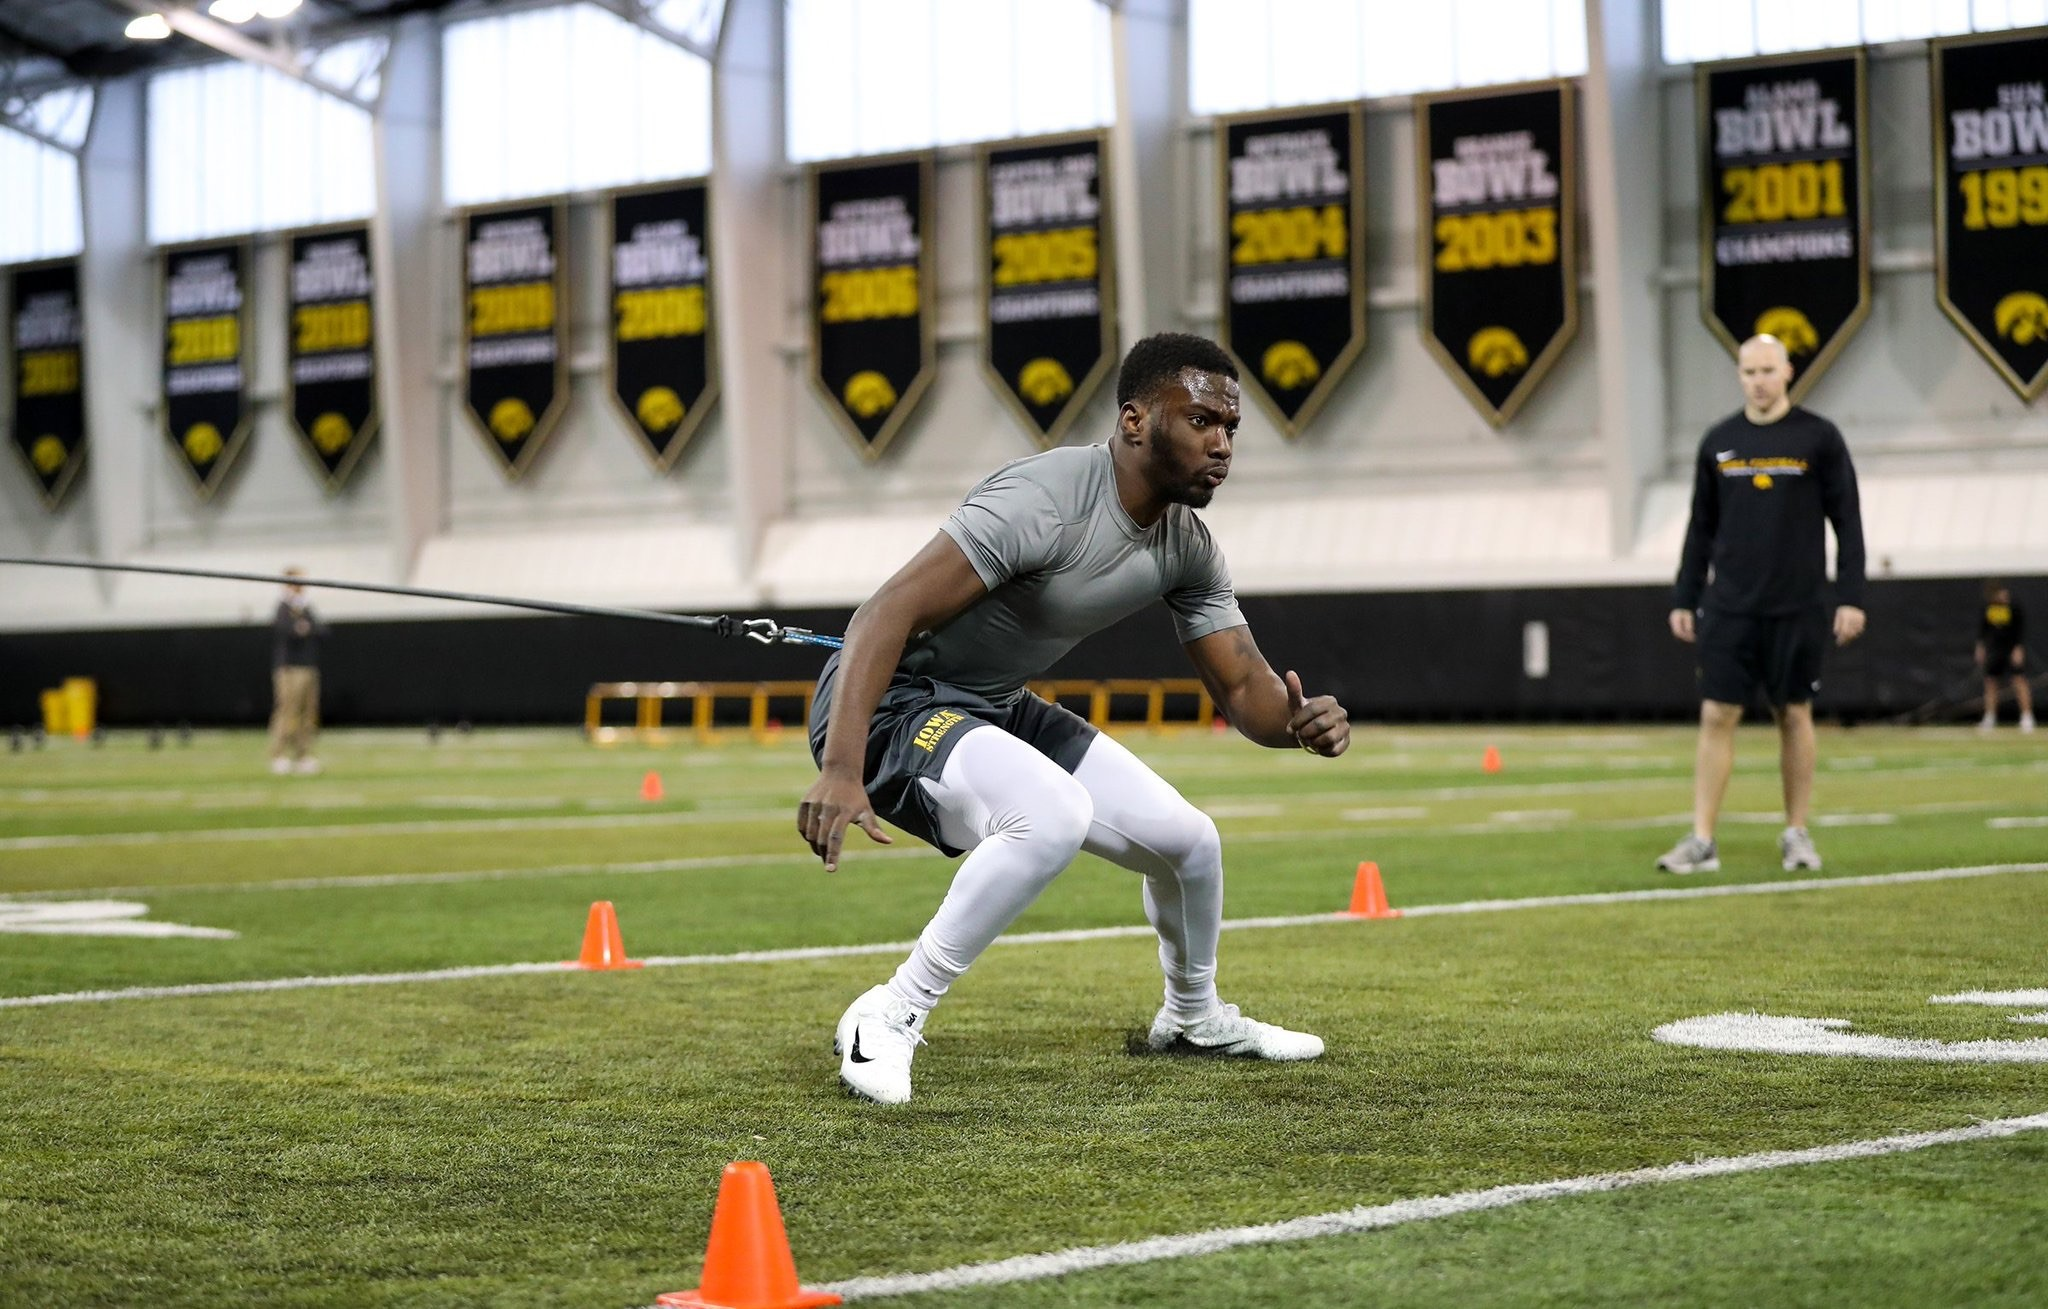 Trey Creamer works out inside Iowa's indoor practice facility. The Cartersville High product currently sits at No. 2 on the depth chart at the left cornerback position for the Hawkeyes heading into his redshirt freshman season.